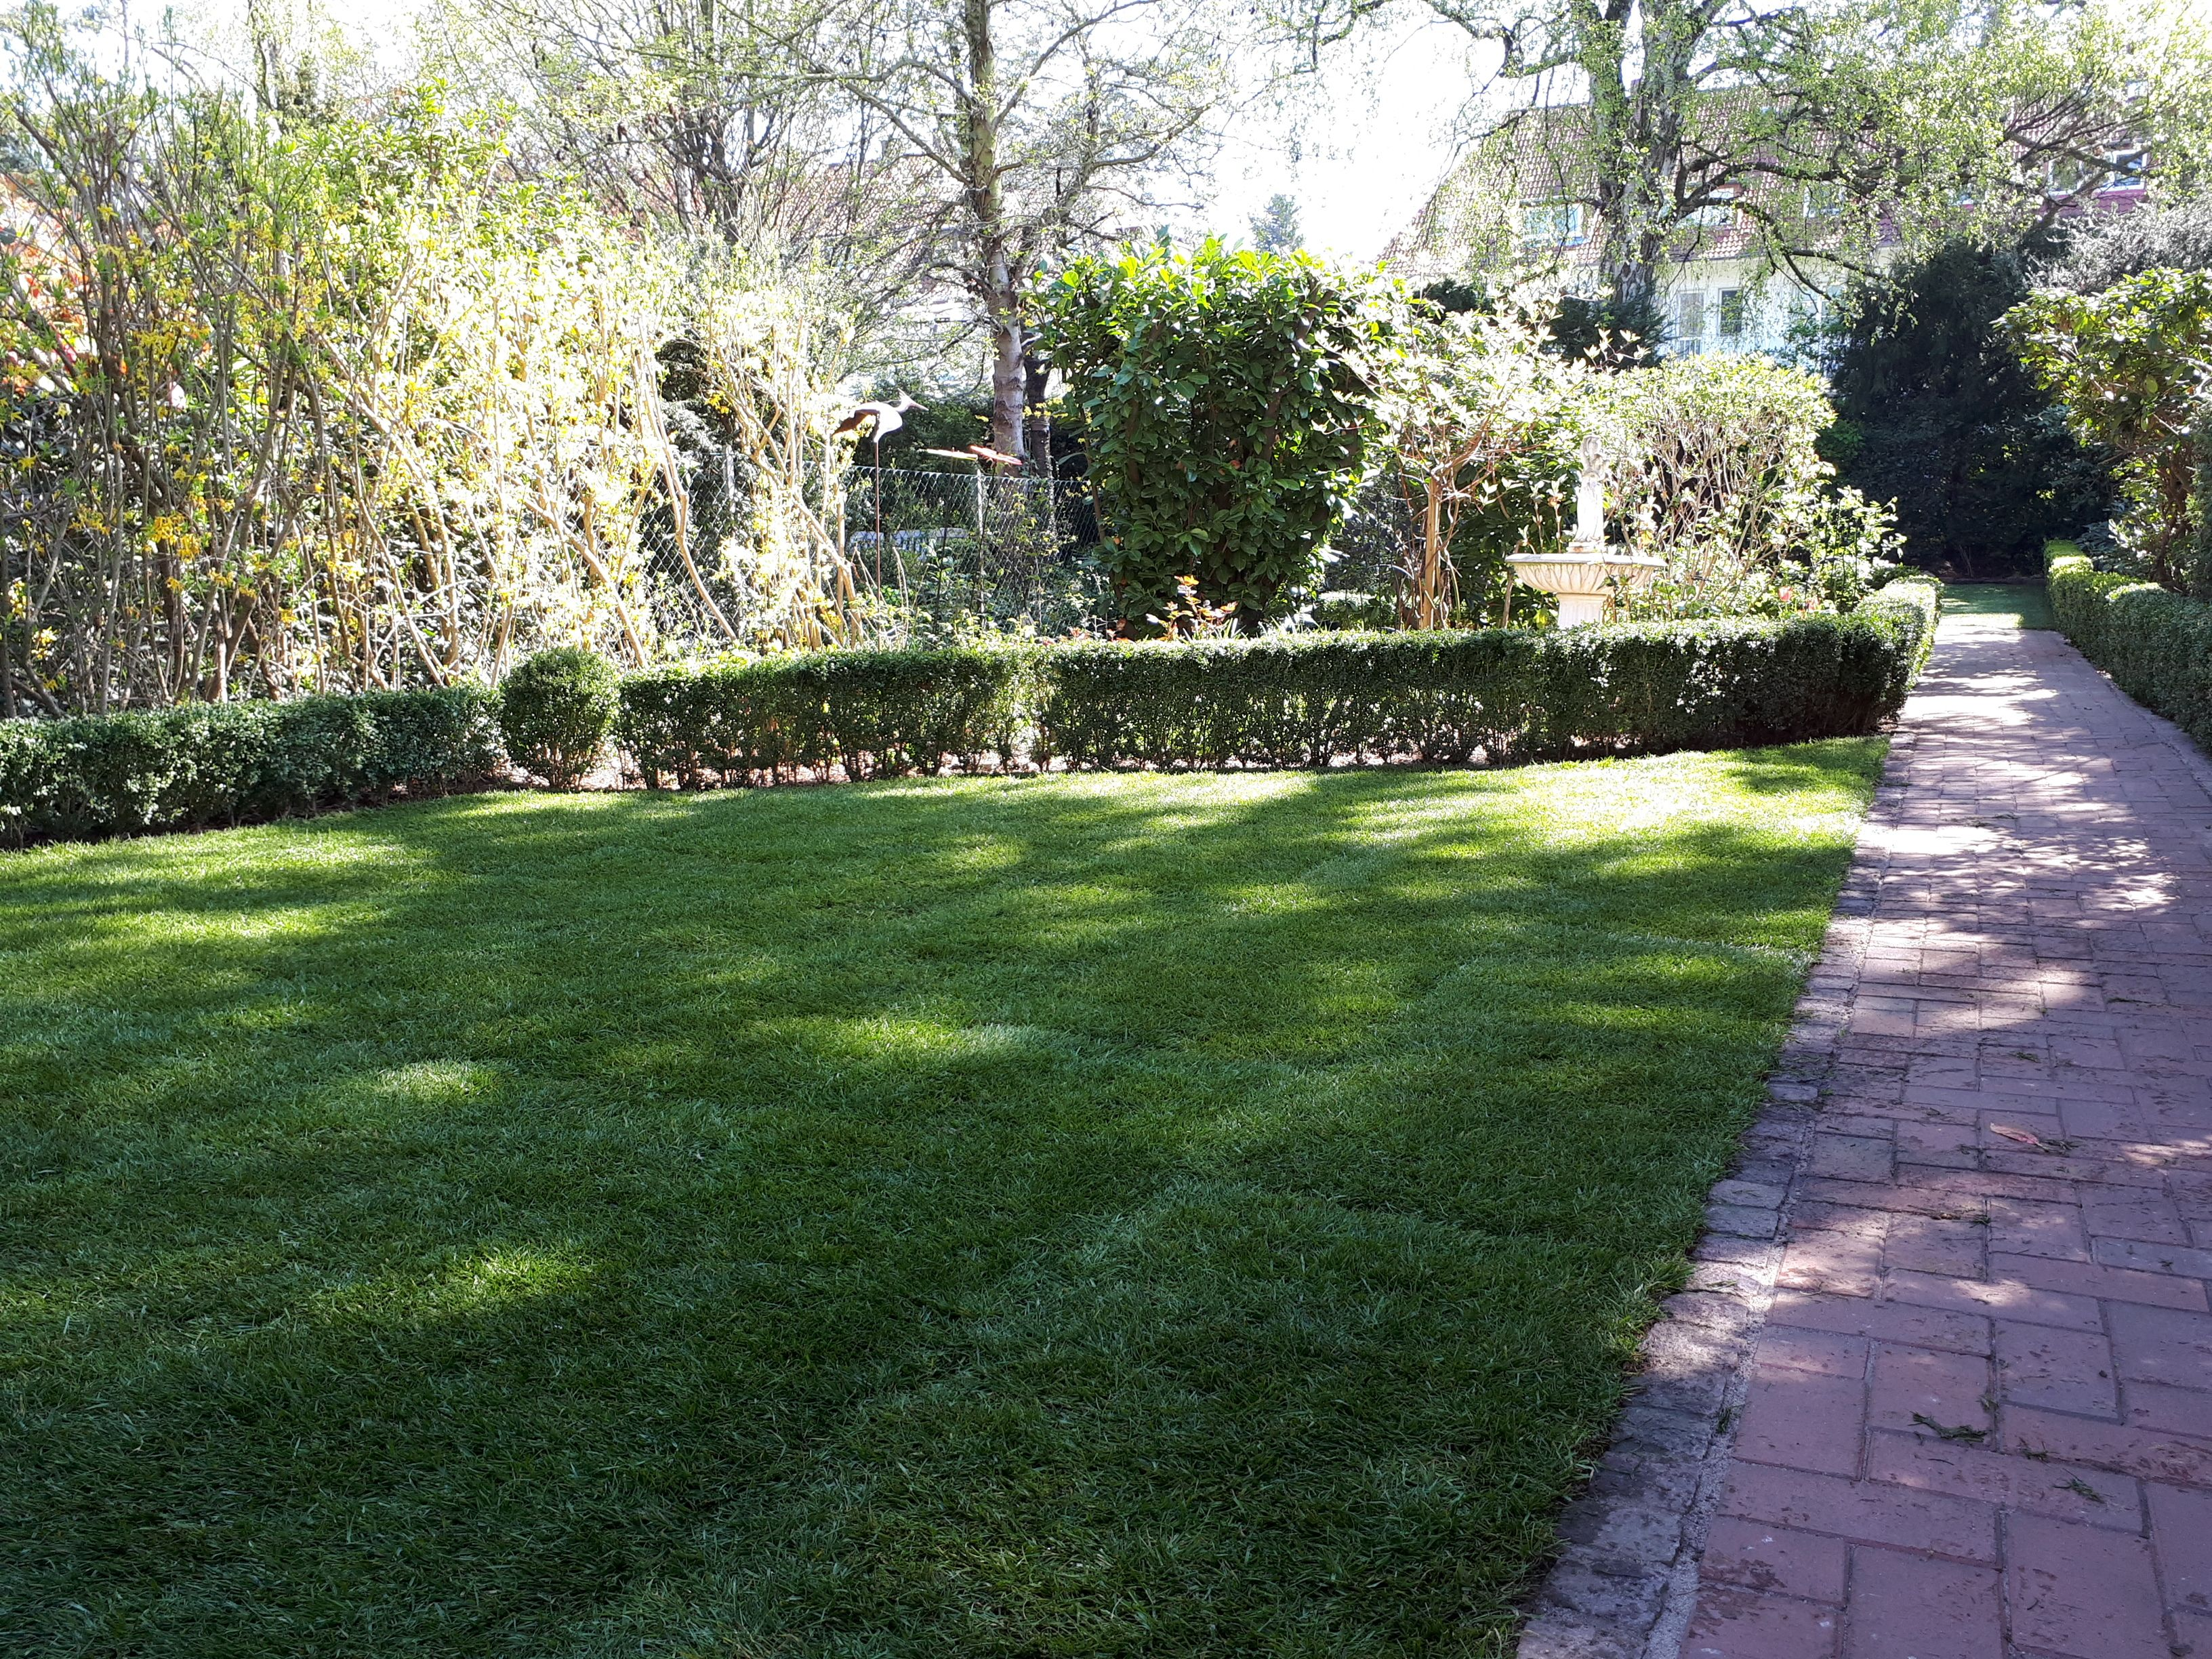 Garten Ideen Rasen Rollrasen Verlegen Durch Greenfairway E K Rollrasen Fertigrasen